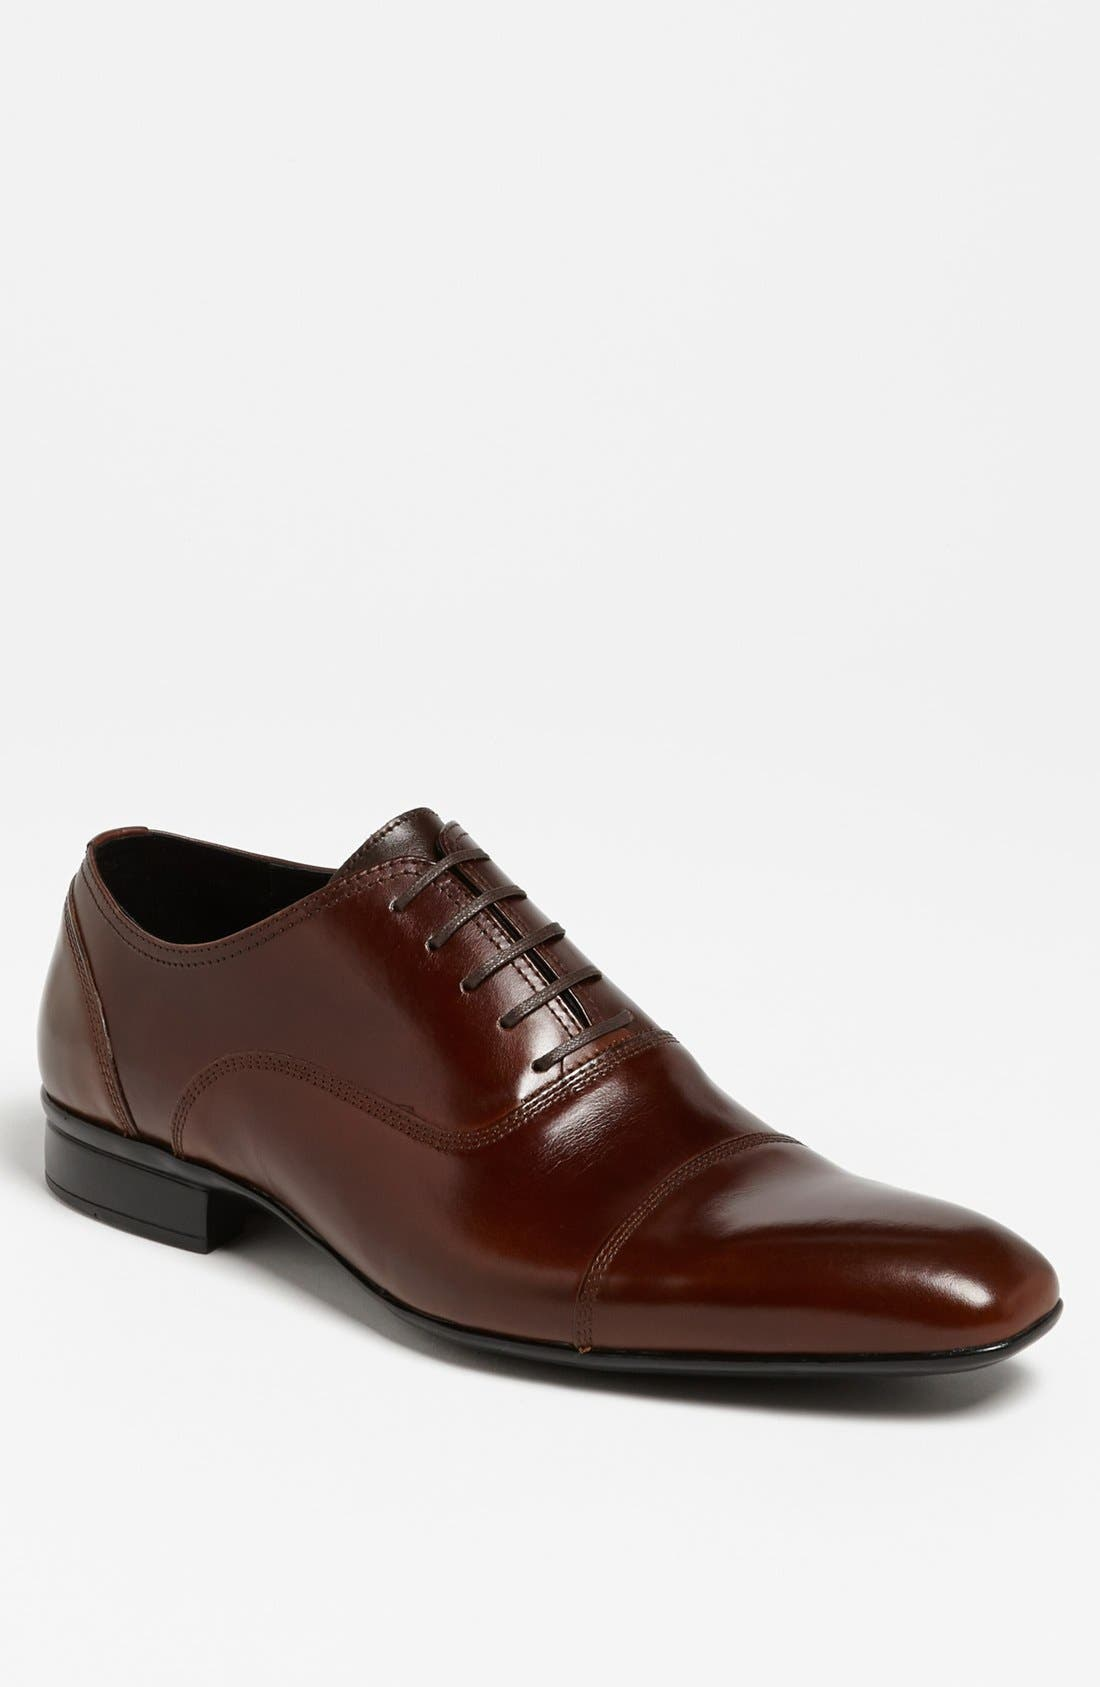 Alternate Image 1 Selected - Kenneth Cole New York 'Success Rate' Cap Toe Oxford